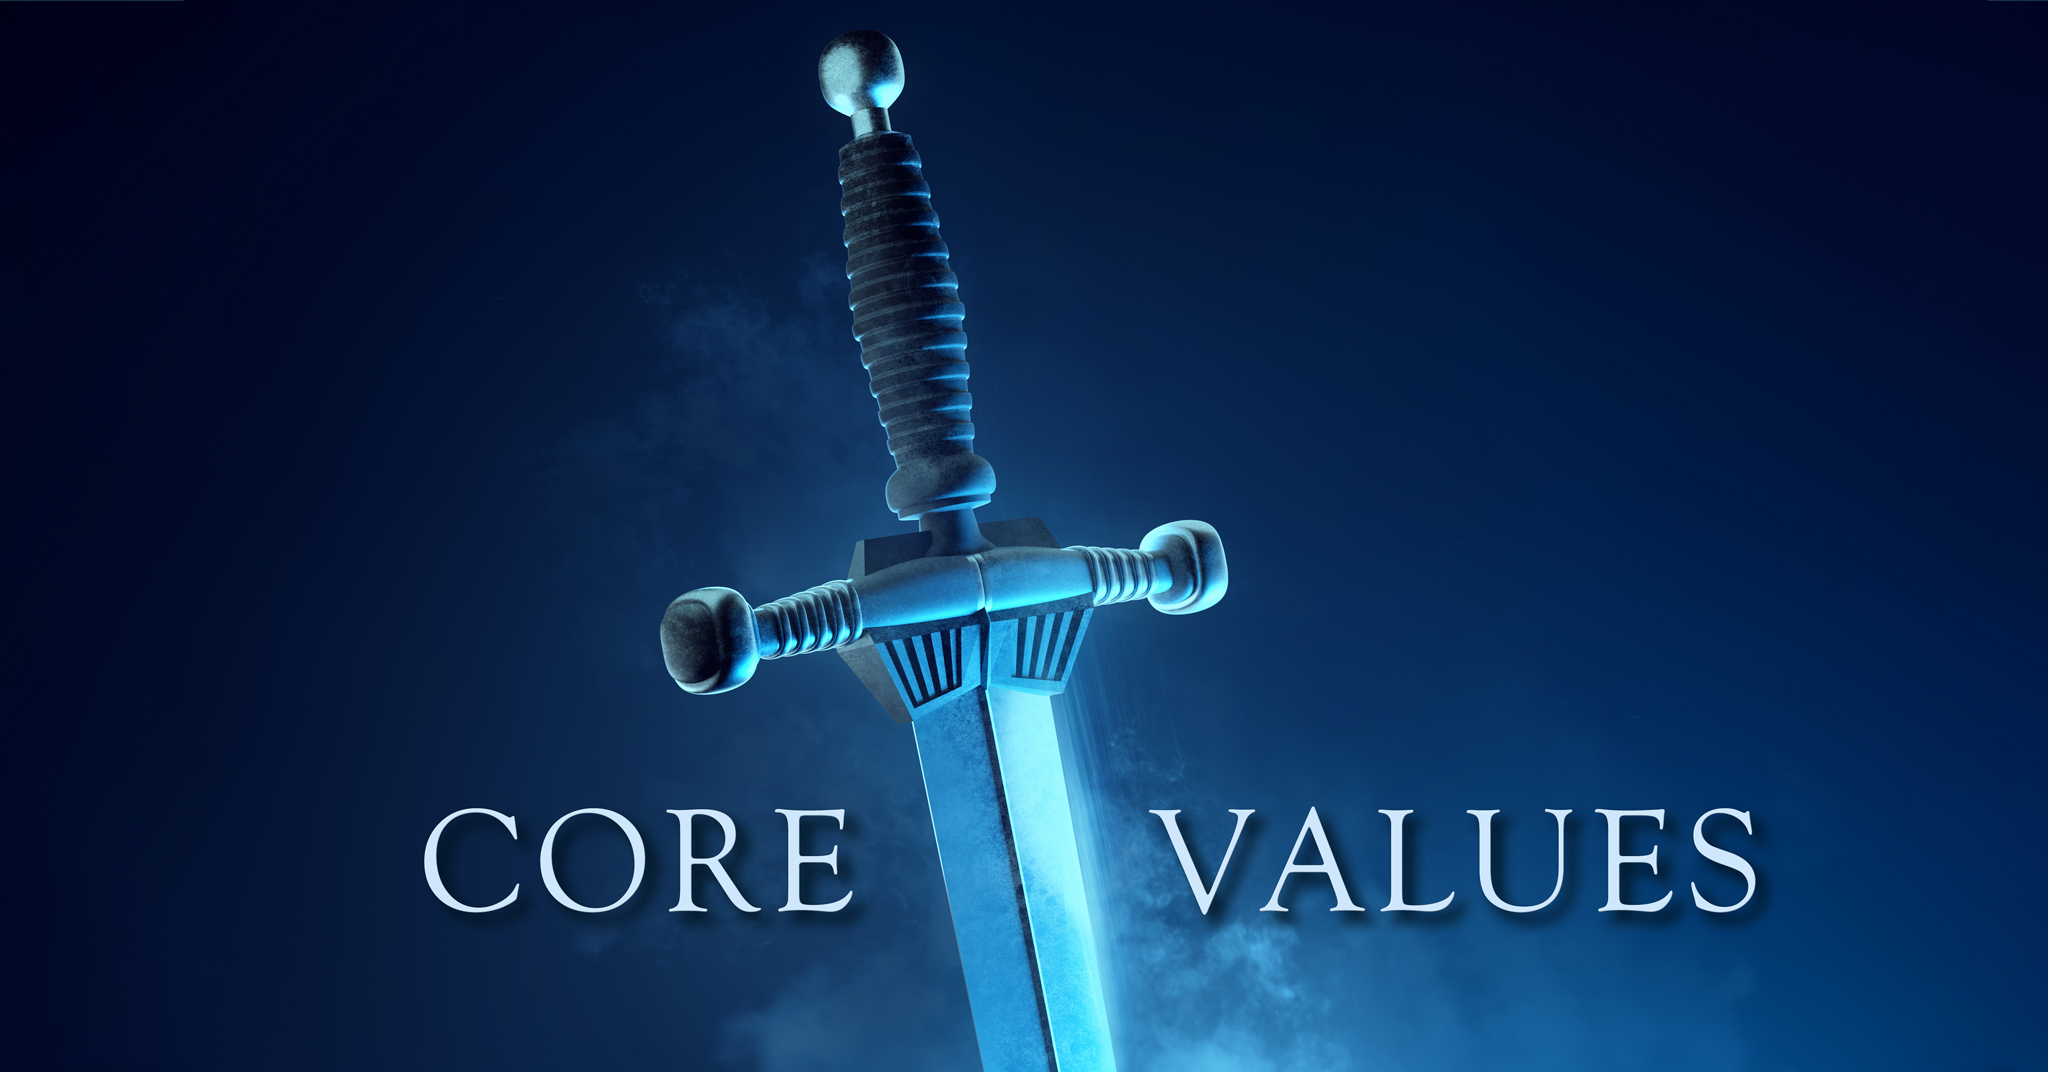 corevalues_blog